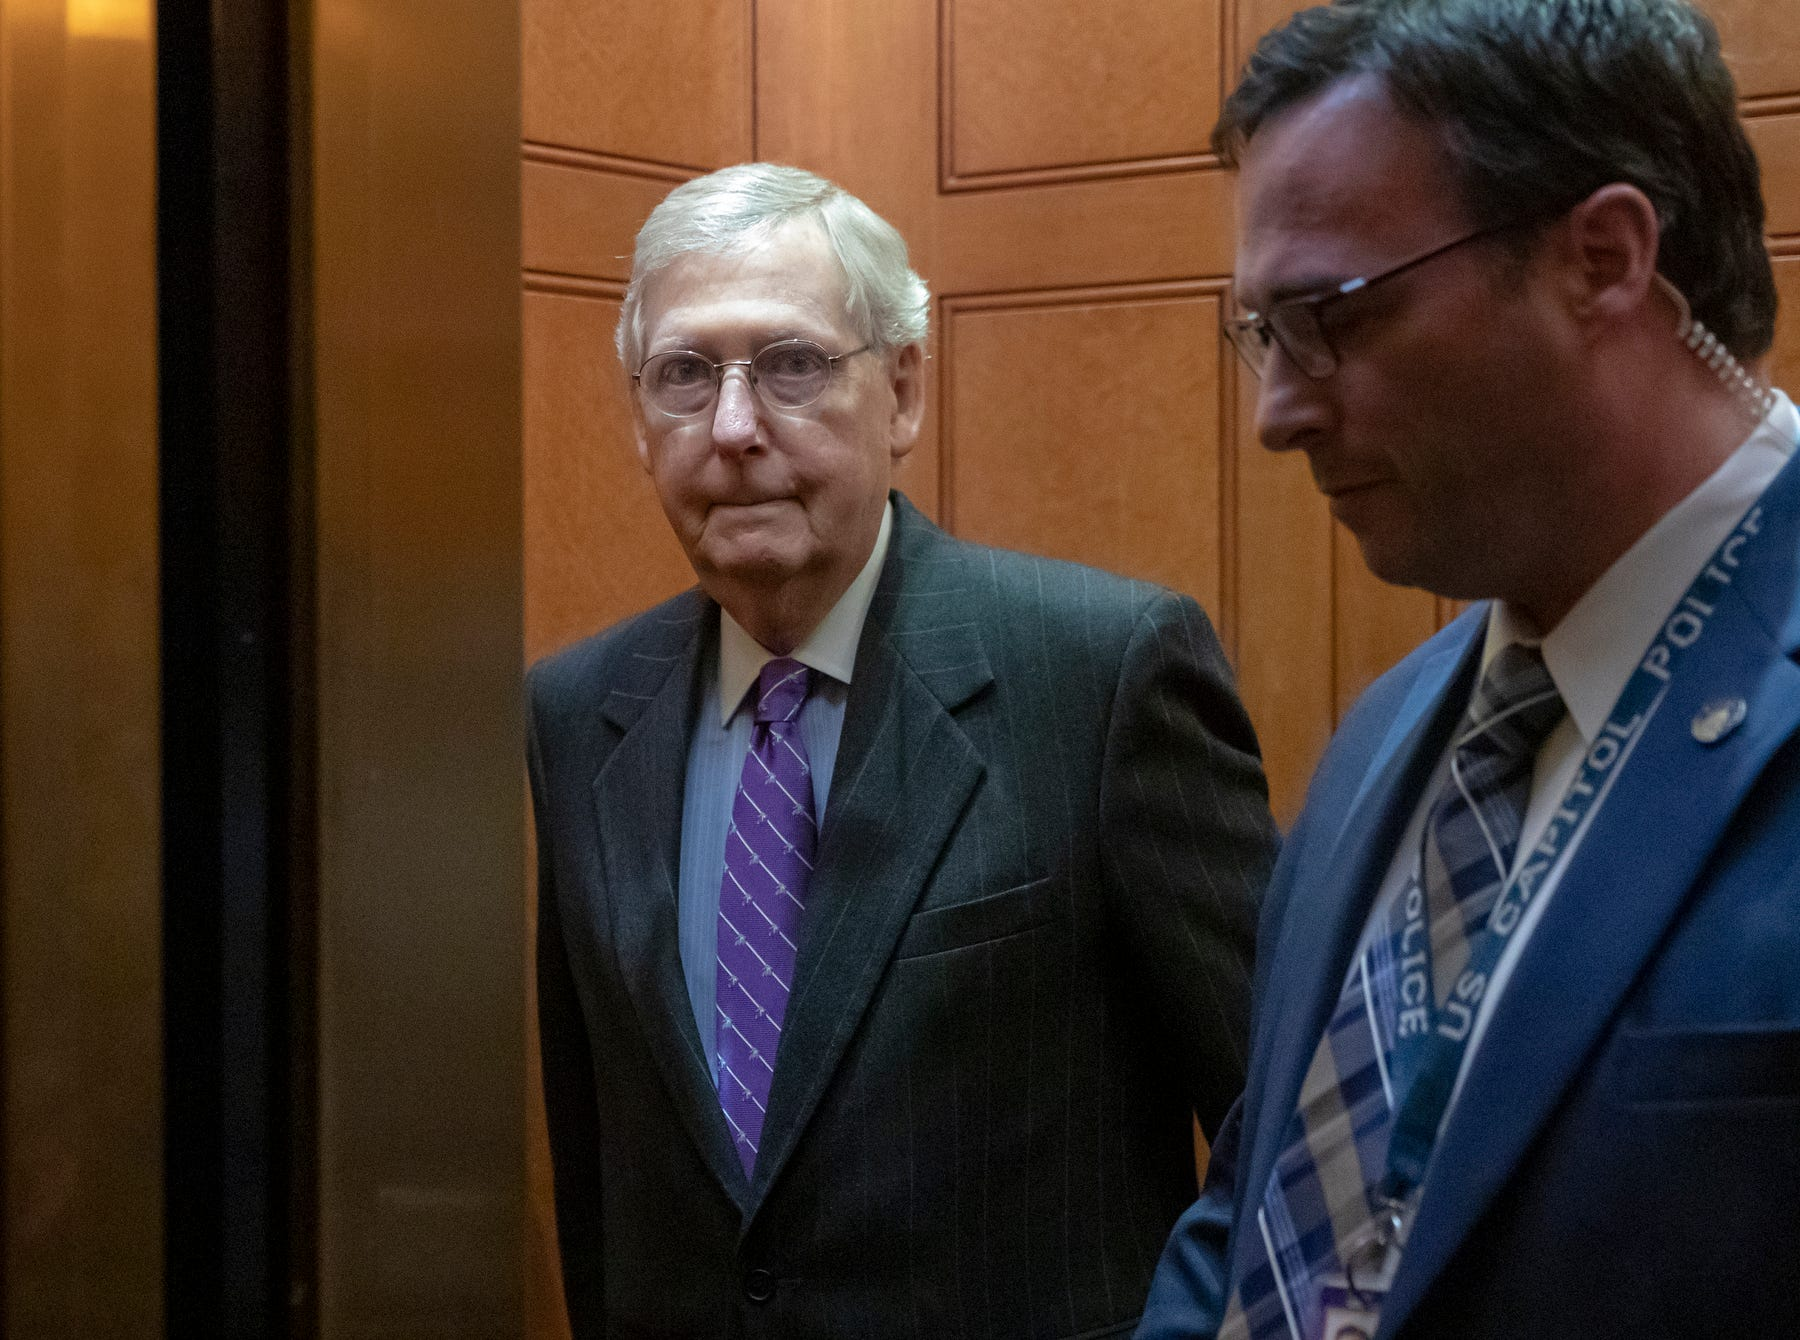 Senate Majority Leader Mitch McConnell, R-Ky., takes an elevator after leaving the chamber, at the Capitol in Washington, Wednesday, Jan. 23, 2019. The Senate will vote on two competing proposals this week to end the partial government shutdown, but neither seems to have enough votes to advance.